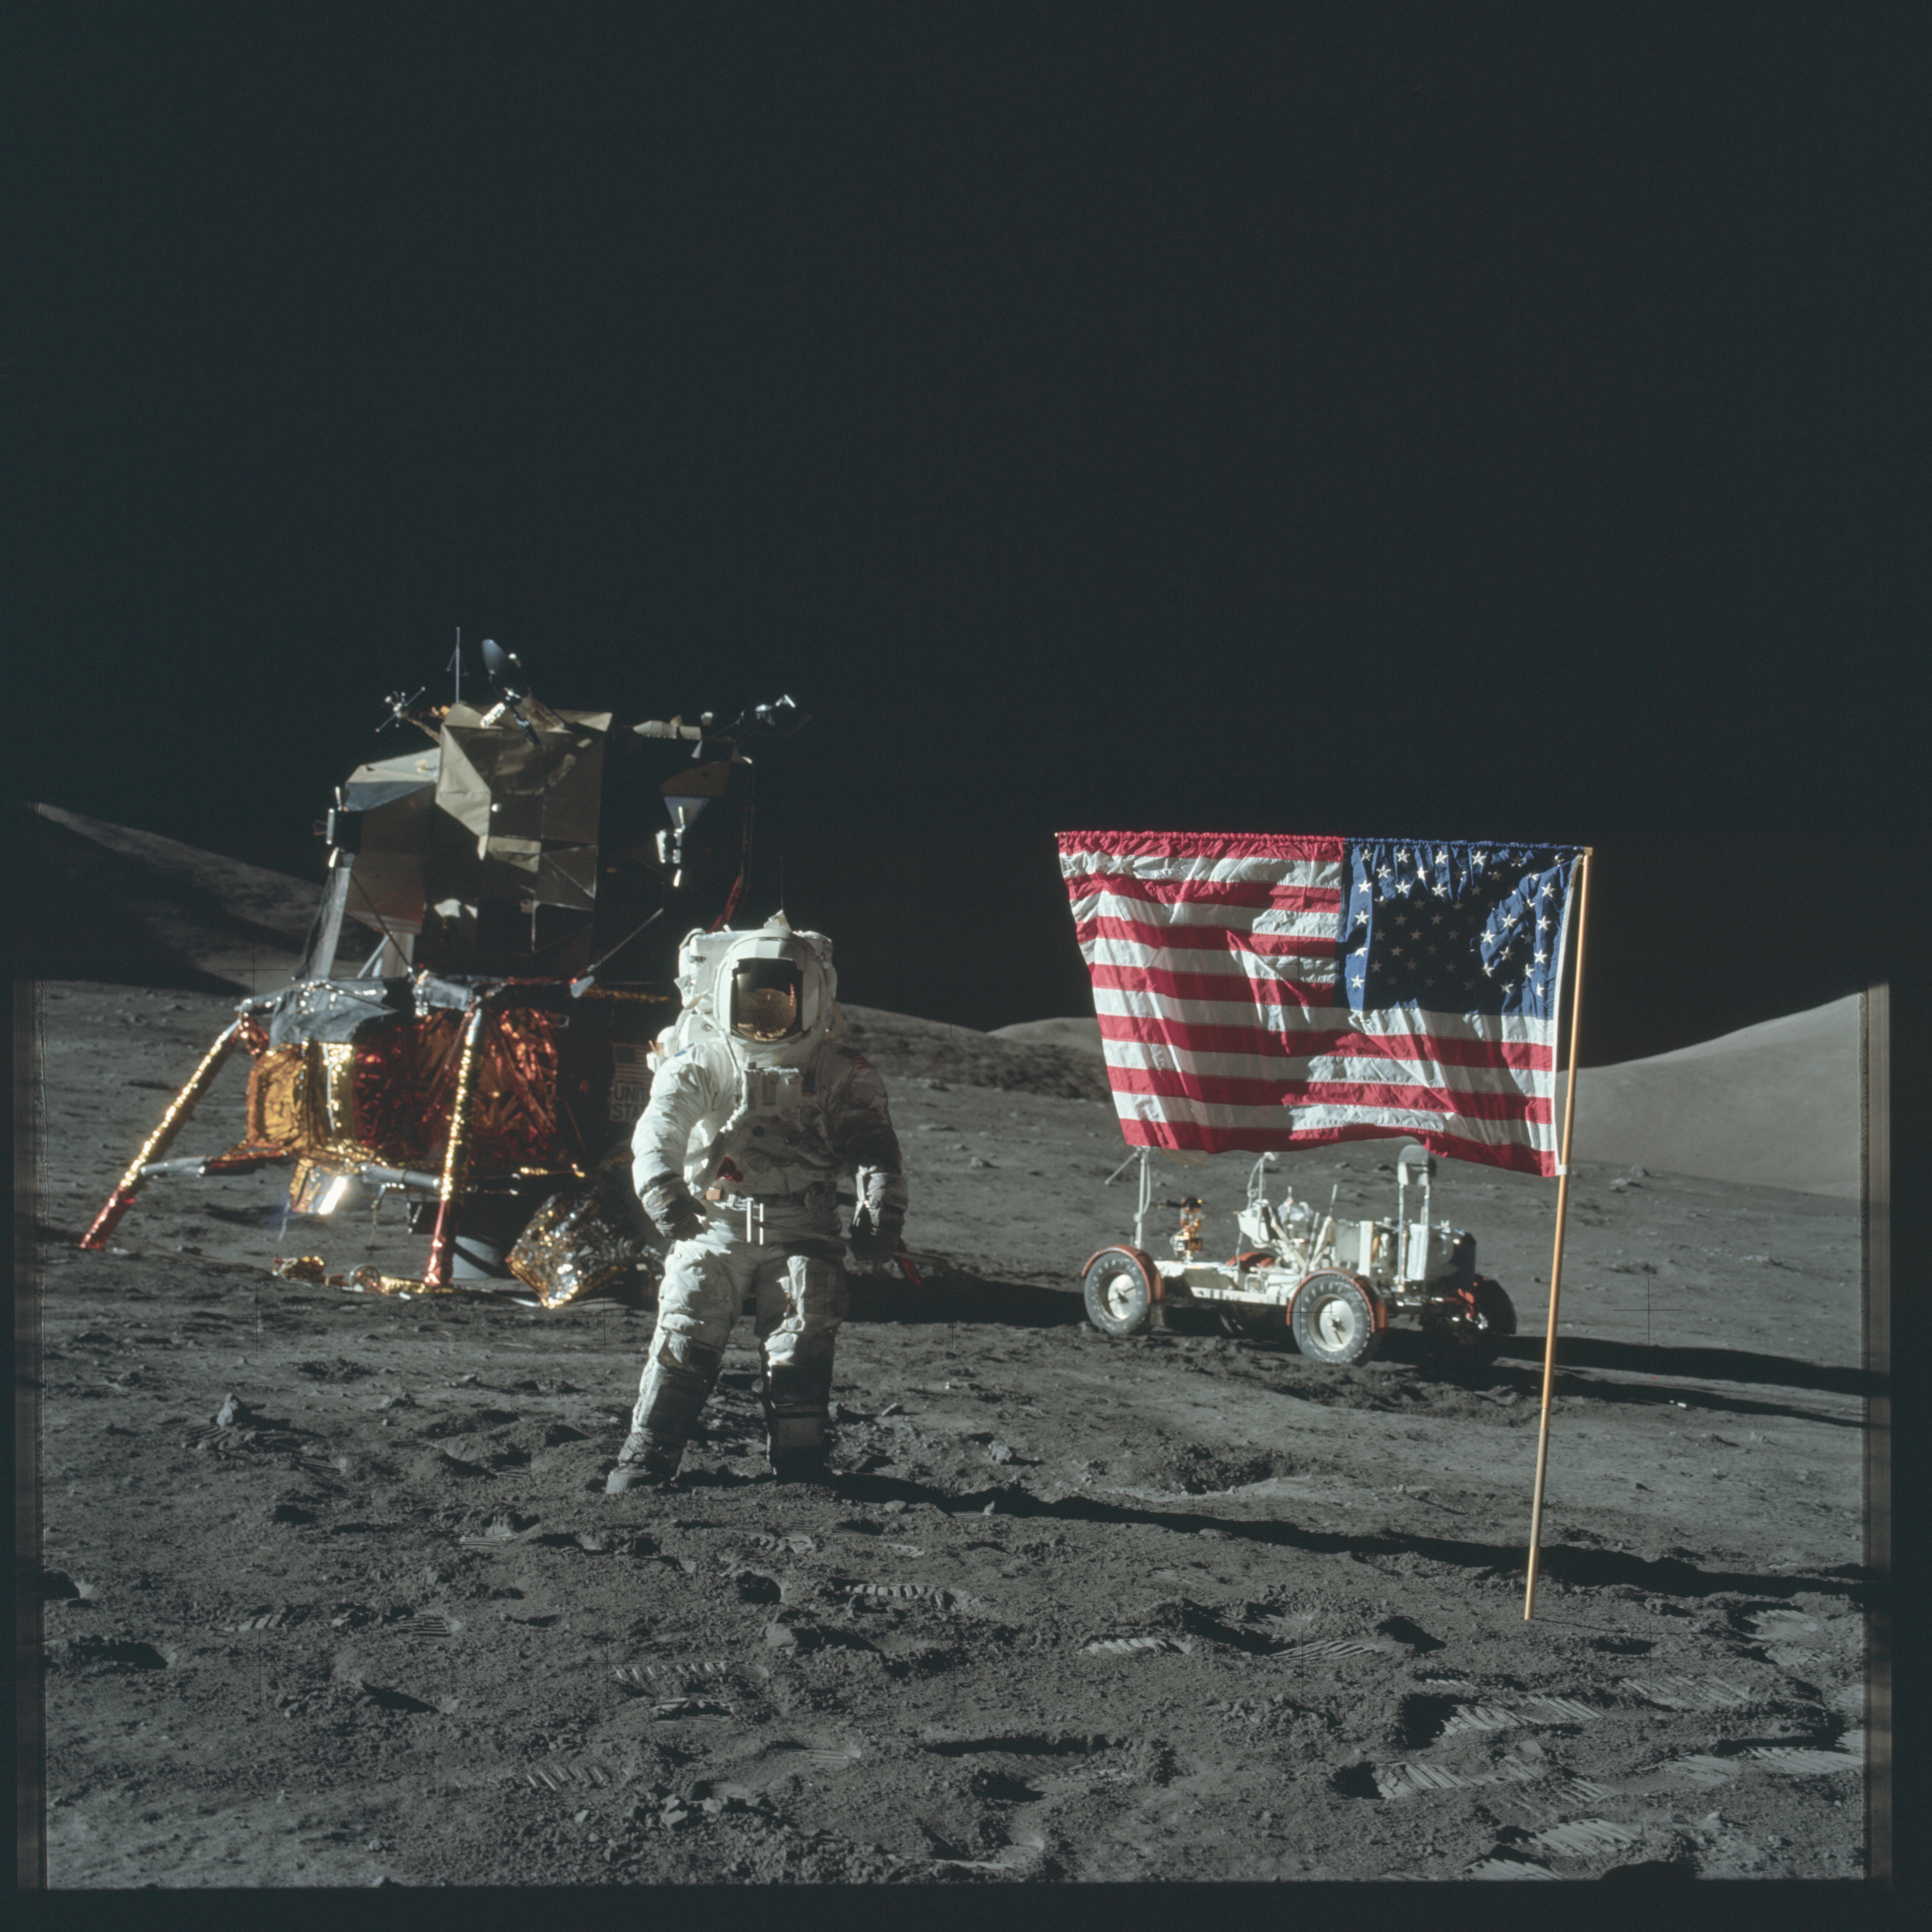 Astronaut Jack Schmitt poses with the American flag while ...